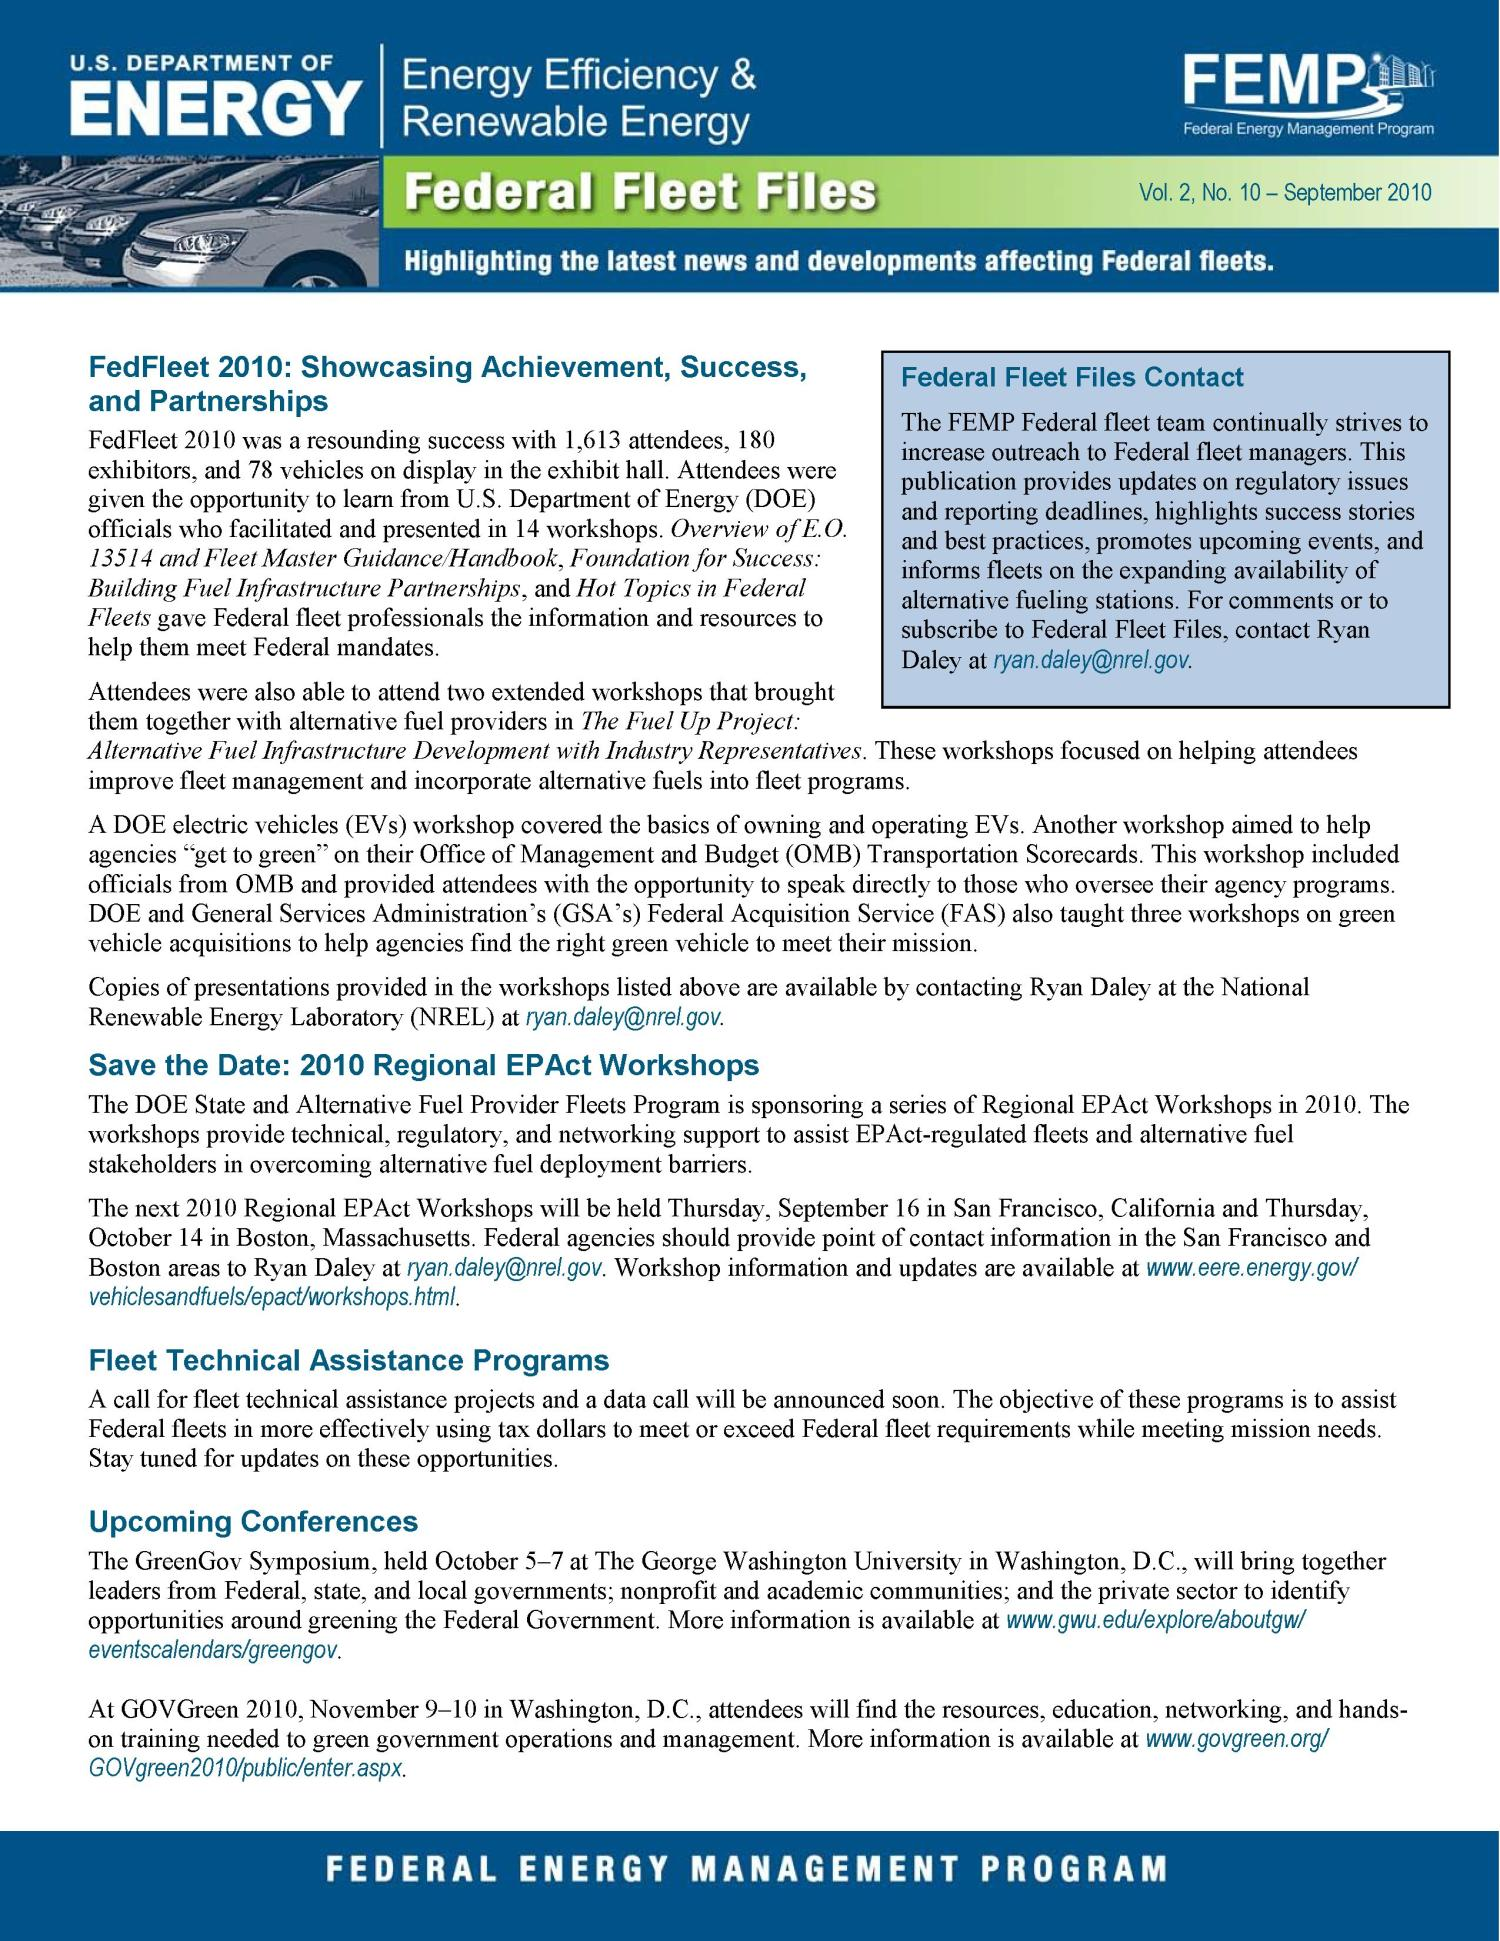 Federal Fleet Files, FEMP, Vol. 2, No. 10 - September 2010 (Fact Sheet)                                                                                                      [Sequence #]: 1 of 2